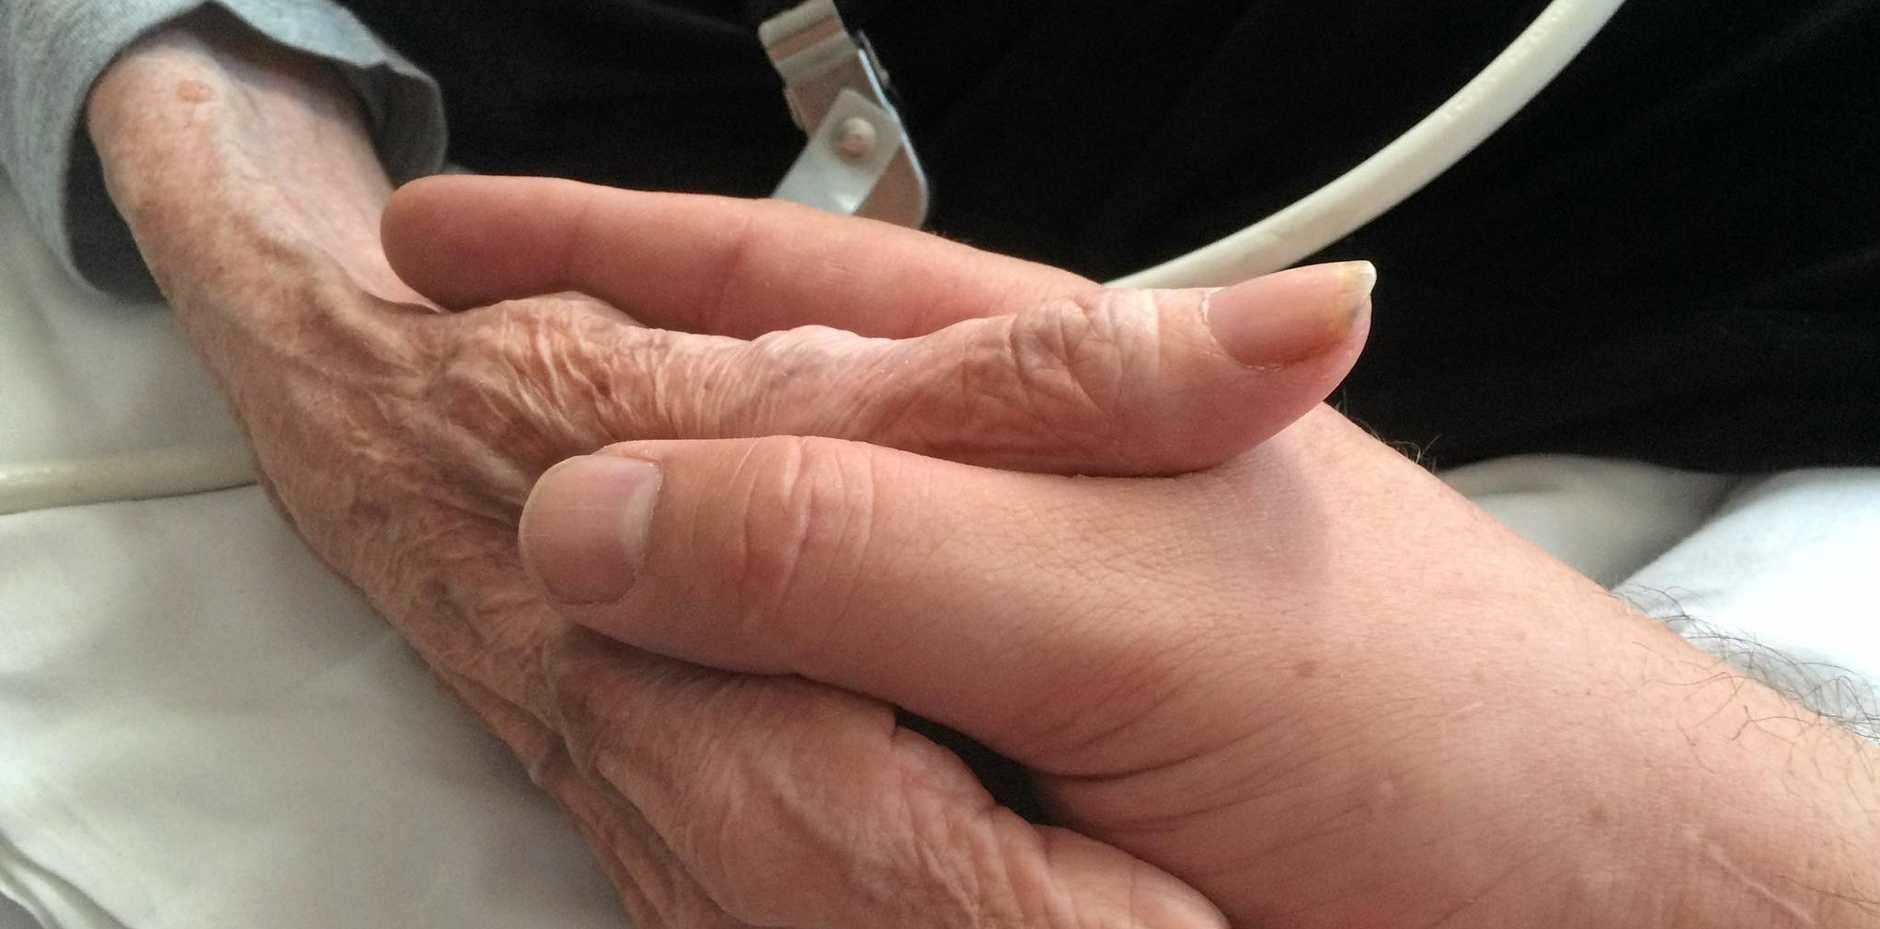 END-OF-LIFE: QUT is looking for people to help with its research into what are the barriers people experience in decision making about end-of-life.